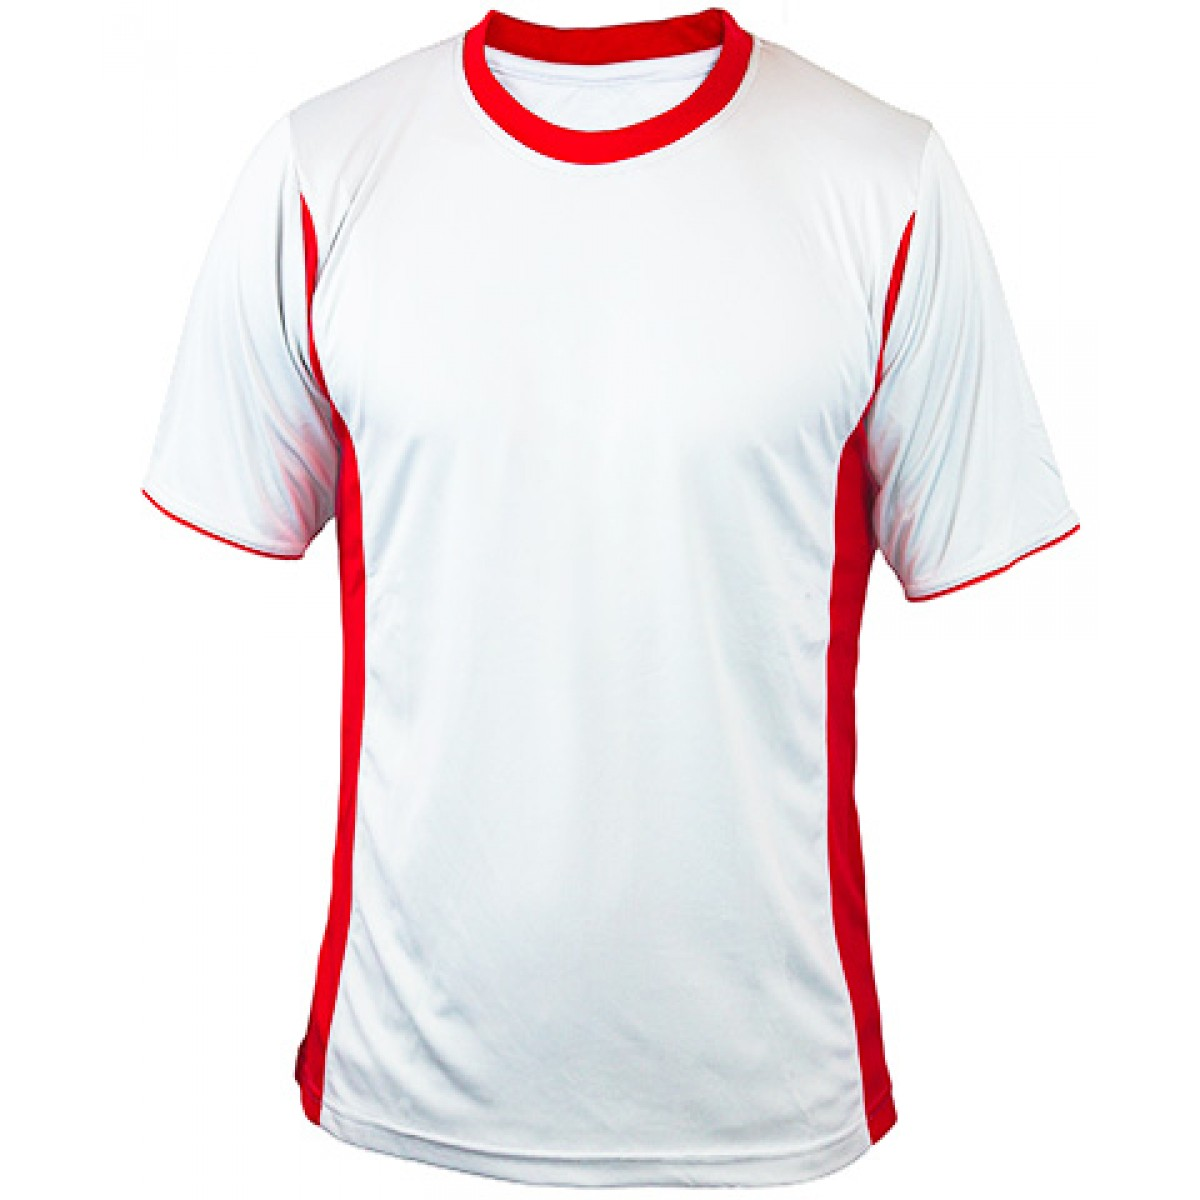 Short Sleeves Performance Fit With Side Insert-Red-YL